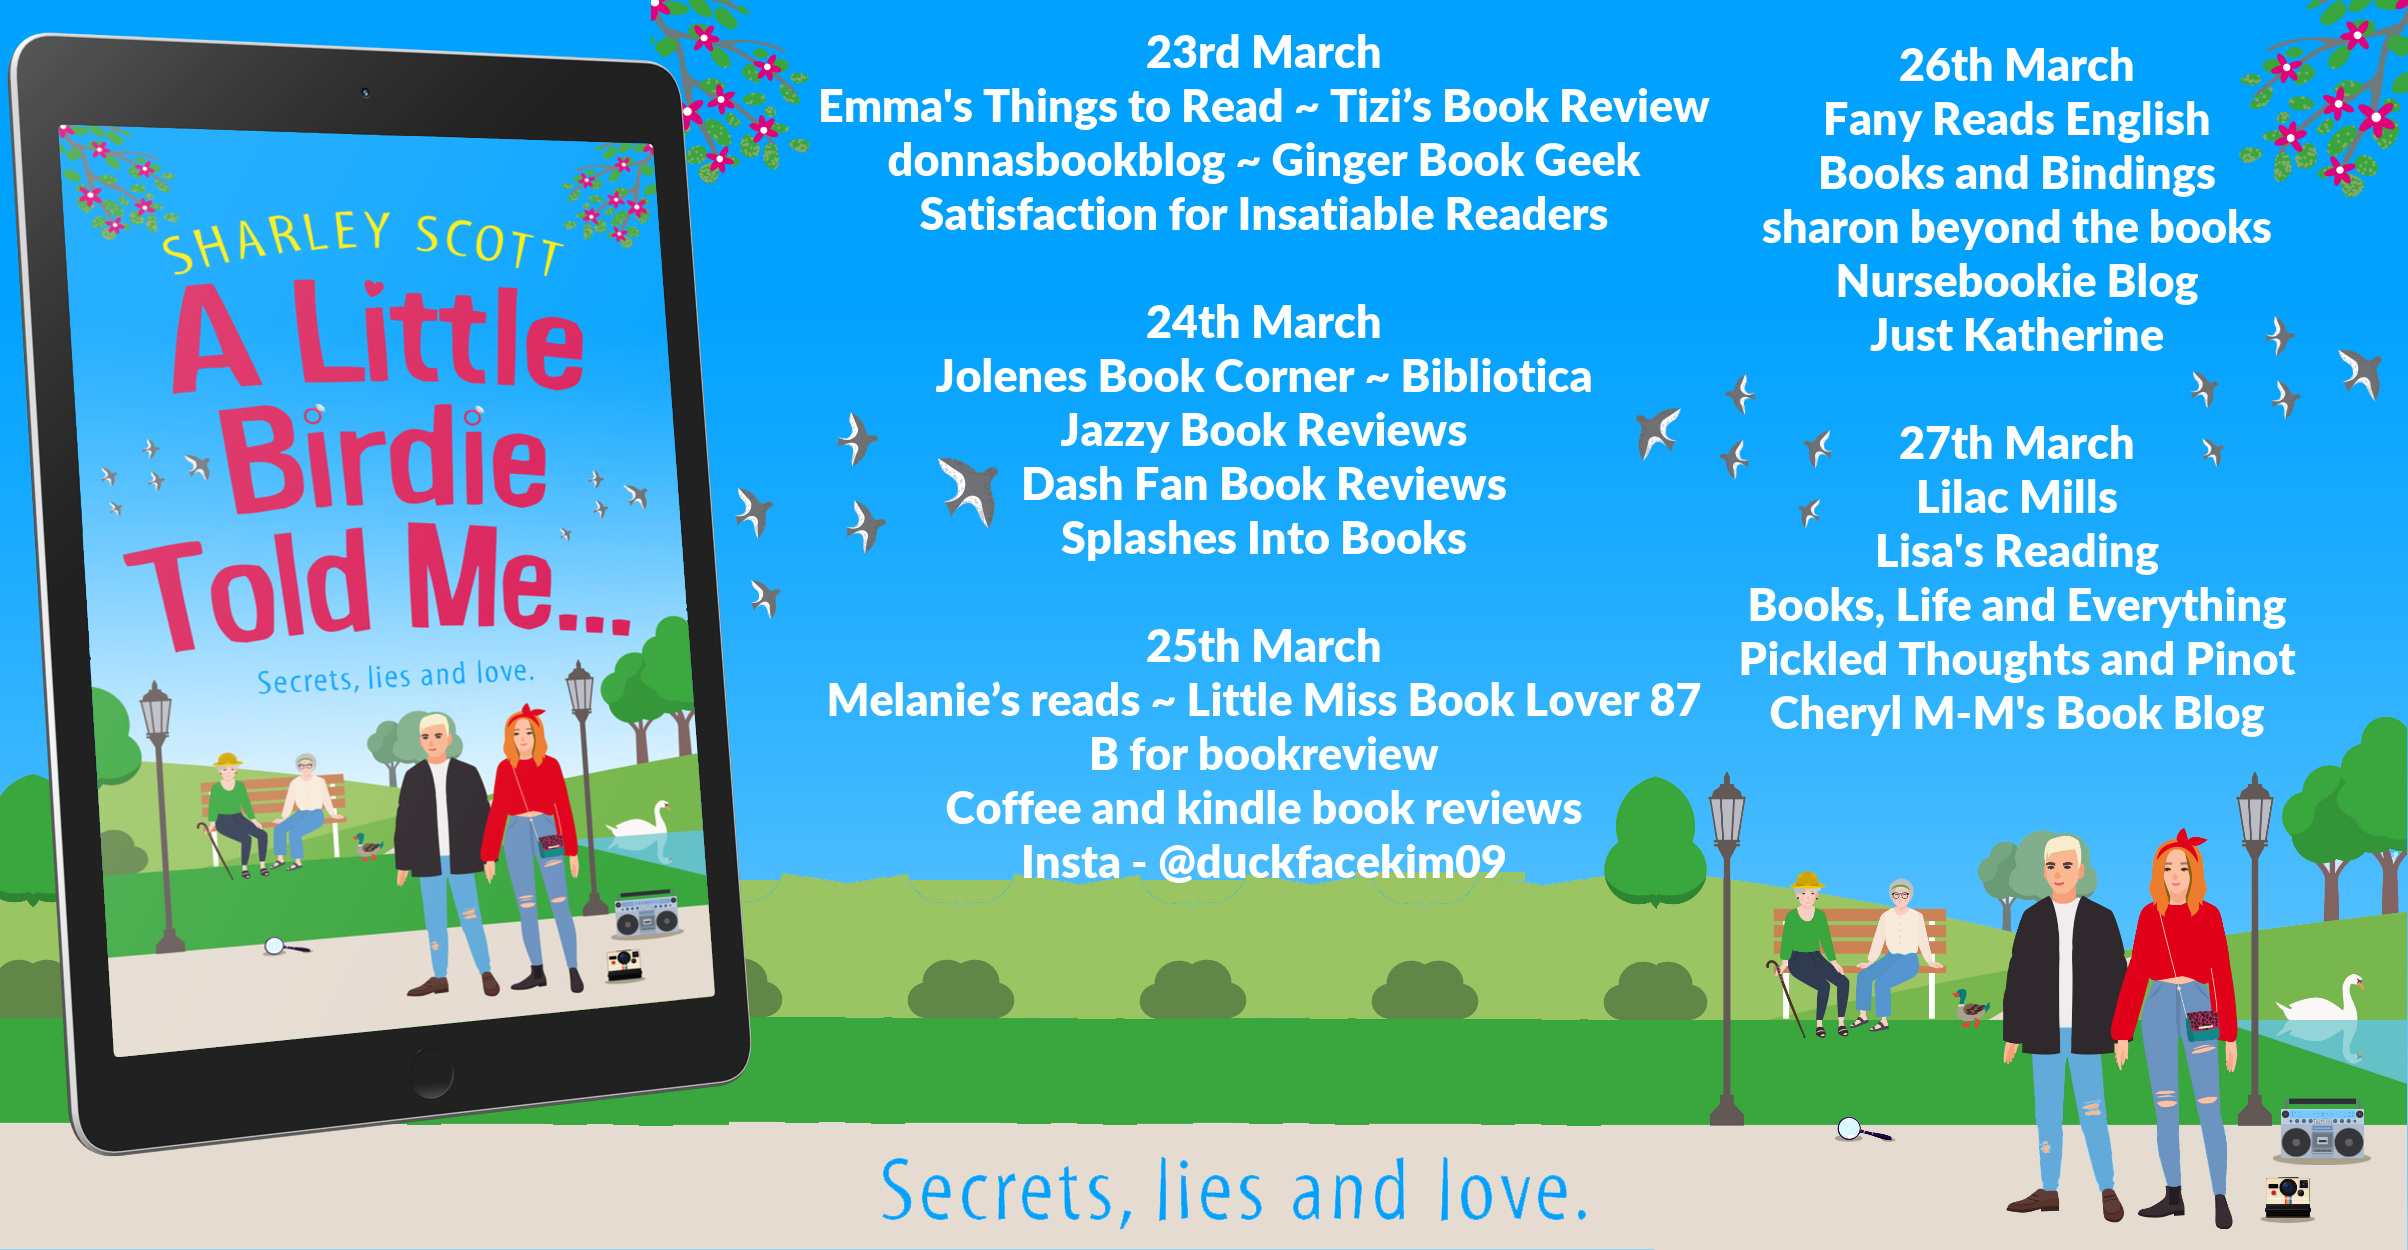 Review: A Little Birdie Told Me, by Sharley Scott